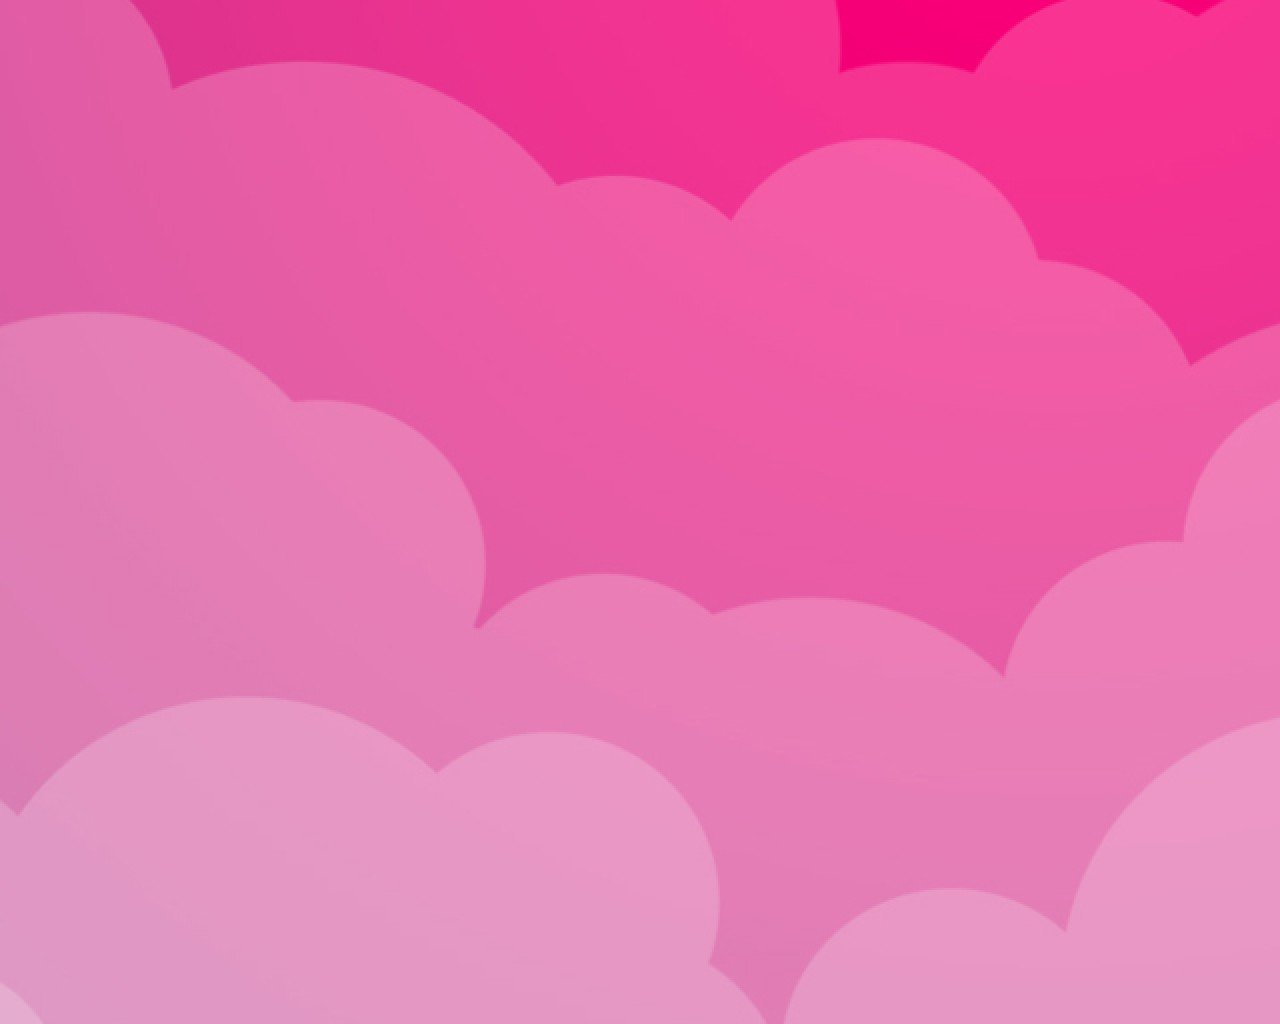 Cute Pink Wallpapers for iPhone 1280x1024